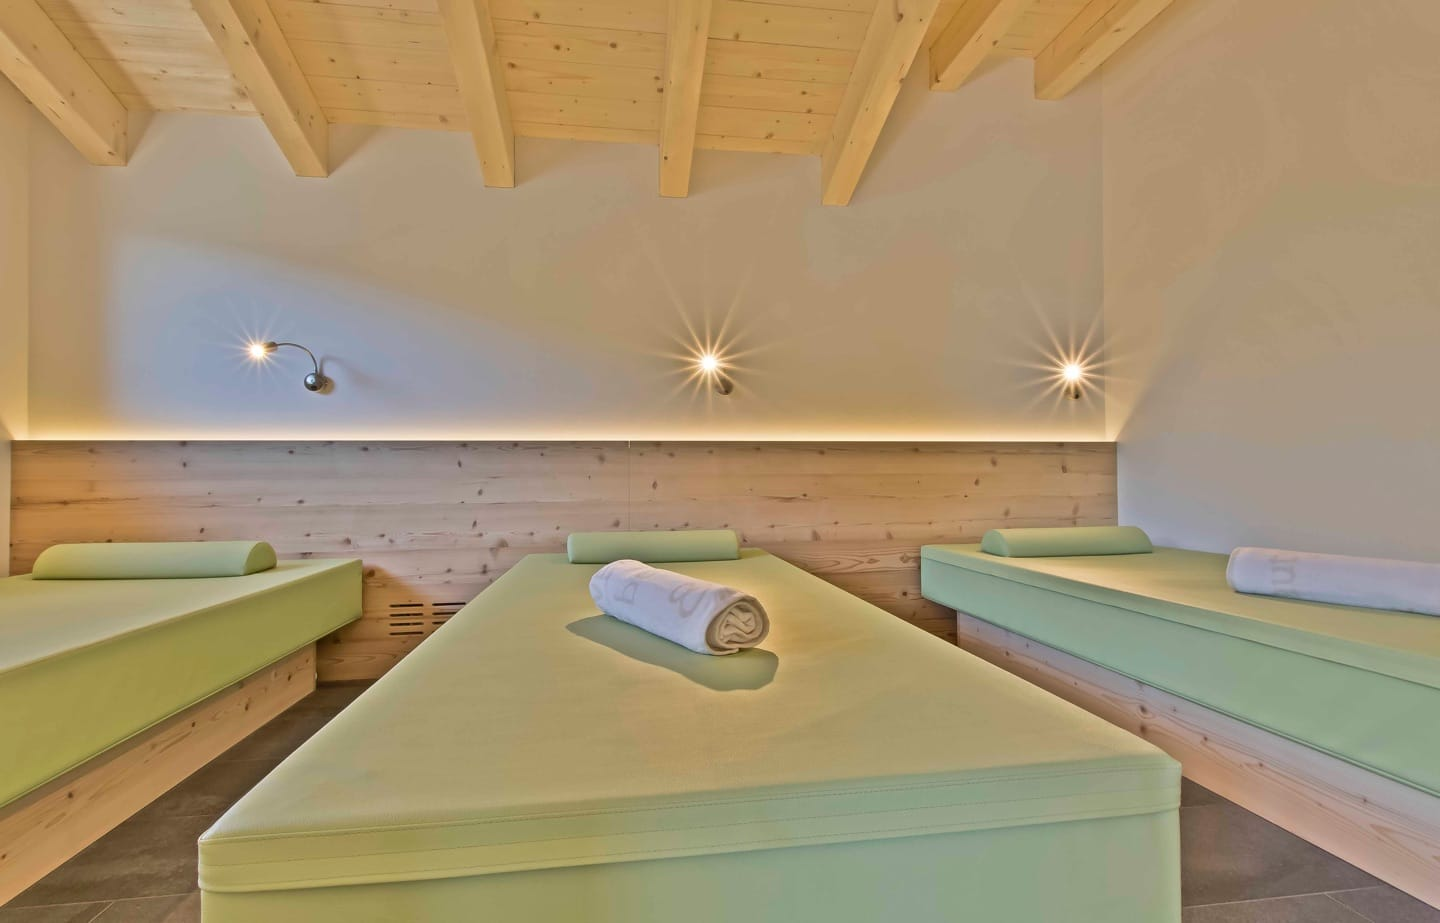 The relaxation area in the wellness space overlooks the magnificent woods of San Cassiano.